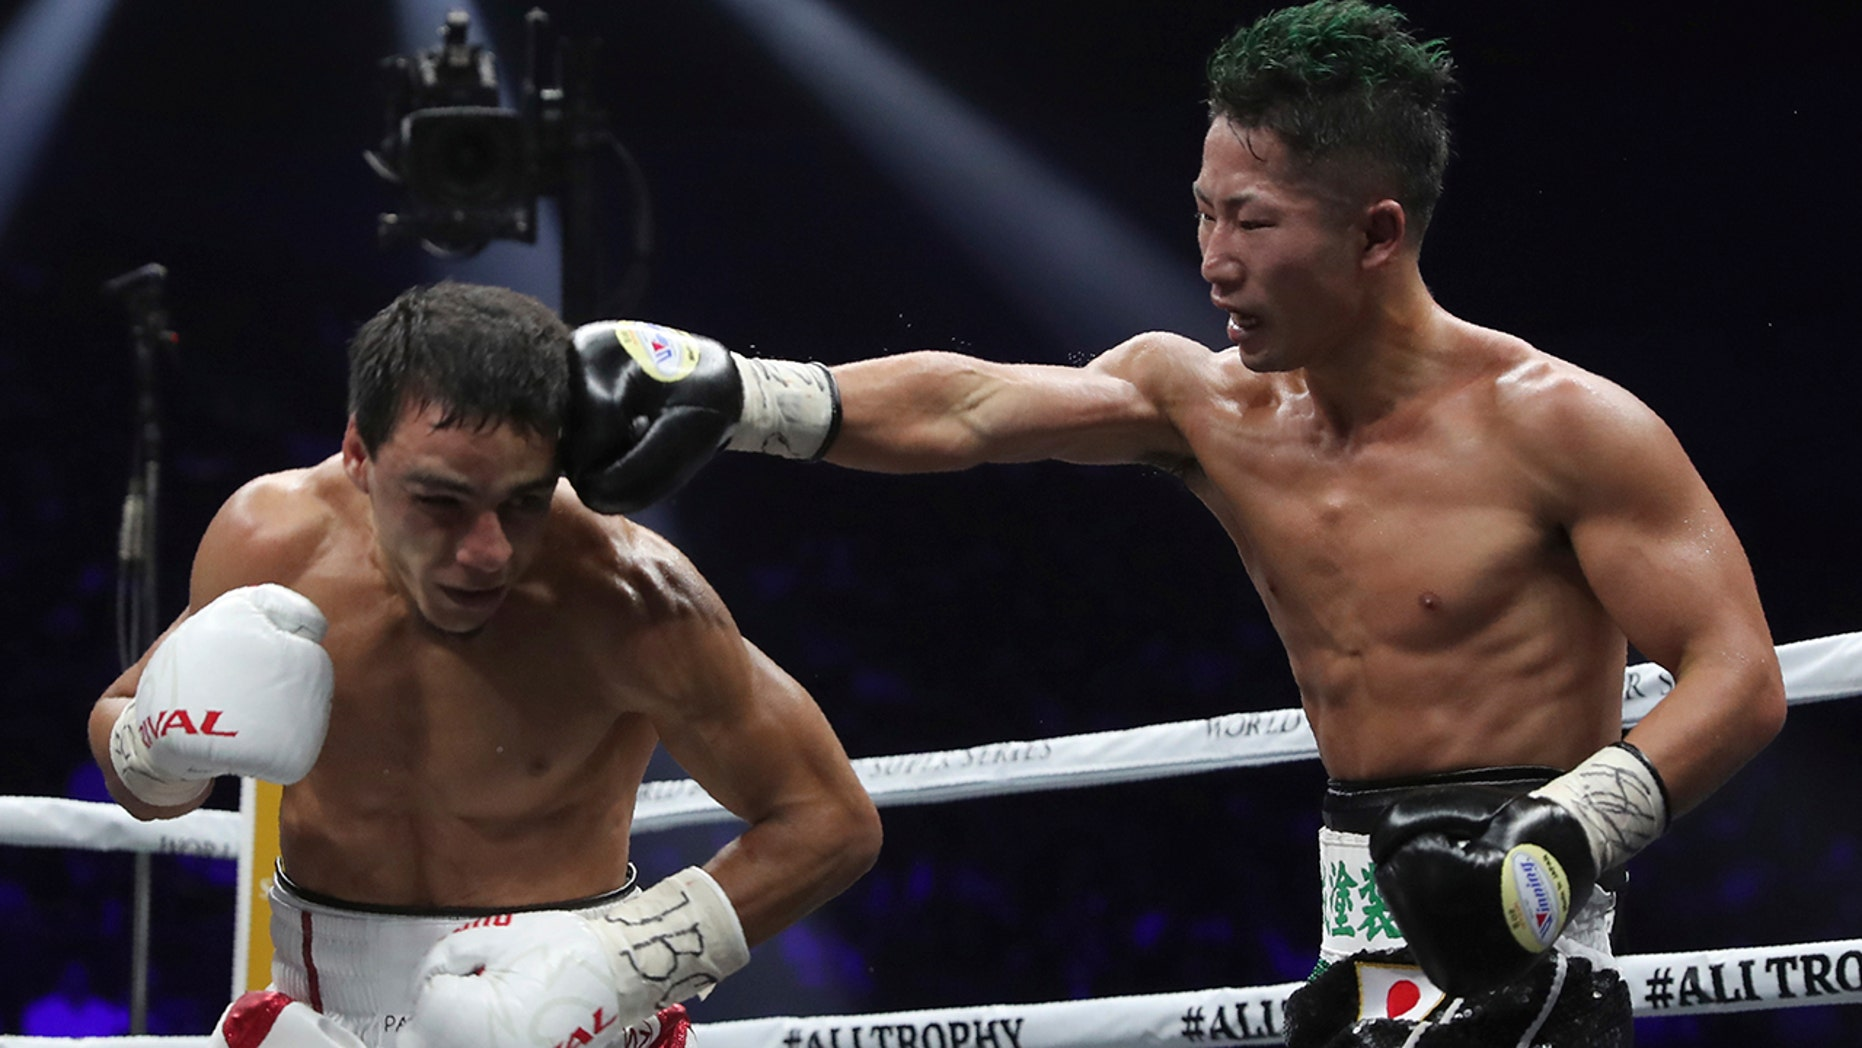 Japan's Takuma Inoue, right, sends a right to France's Nordine Oubaali in a 12th spin of their WBC universe bantamweight pretension compare in Saitama, Japan, Thursday, Nov. 7, 2019. Oubaali degraded Inoue by a unanimous decision. (AP Photo/Toru Takahashi)